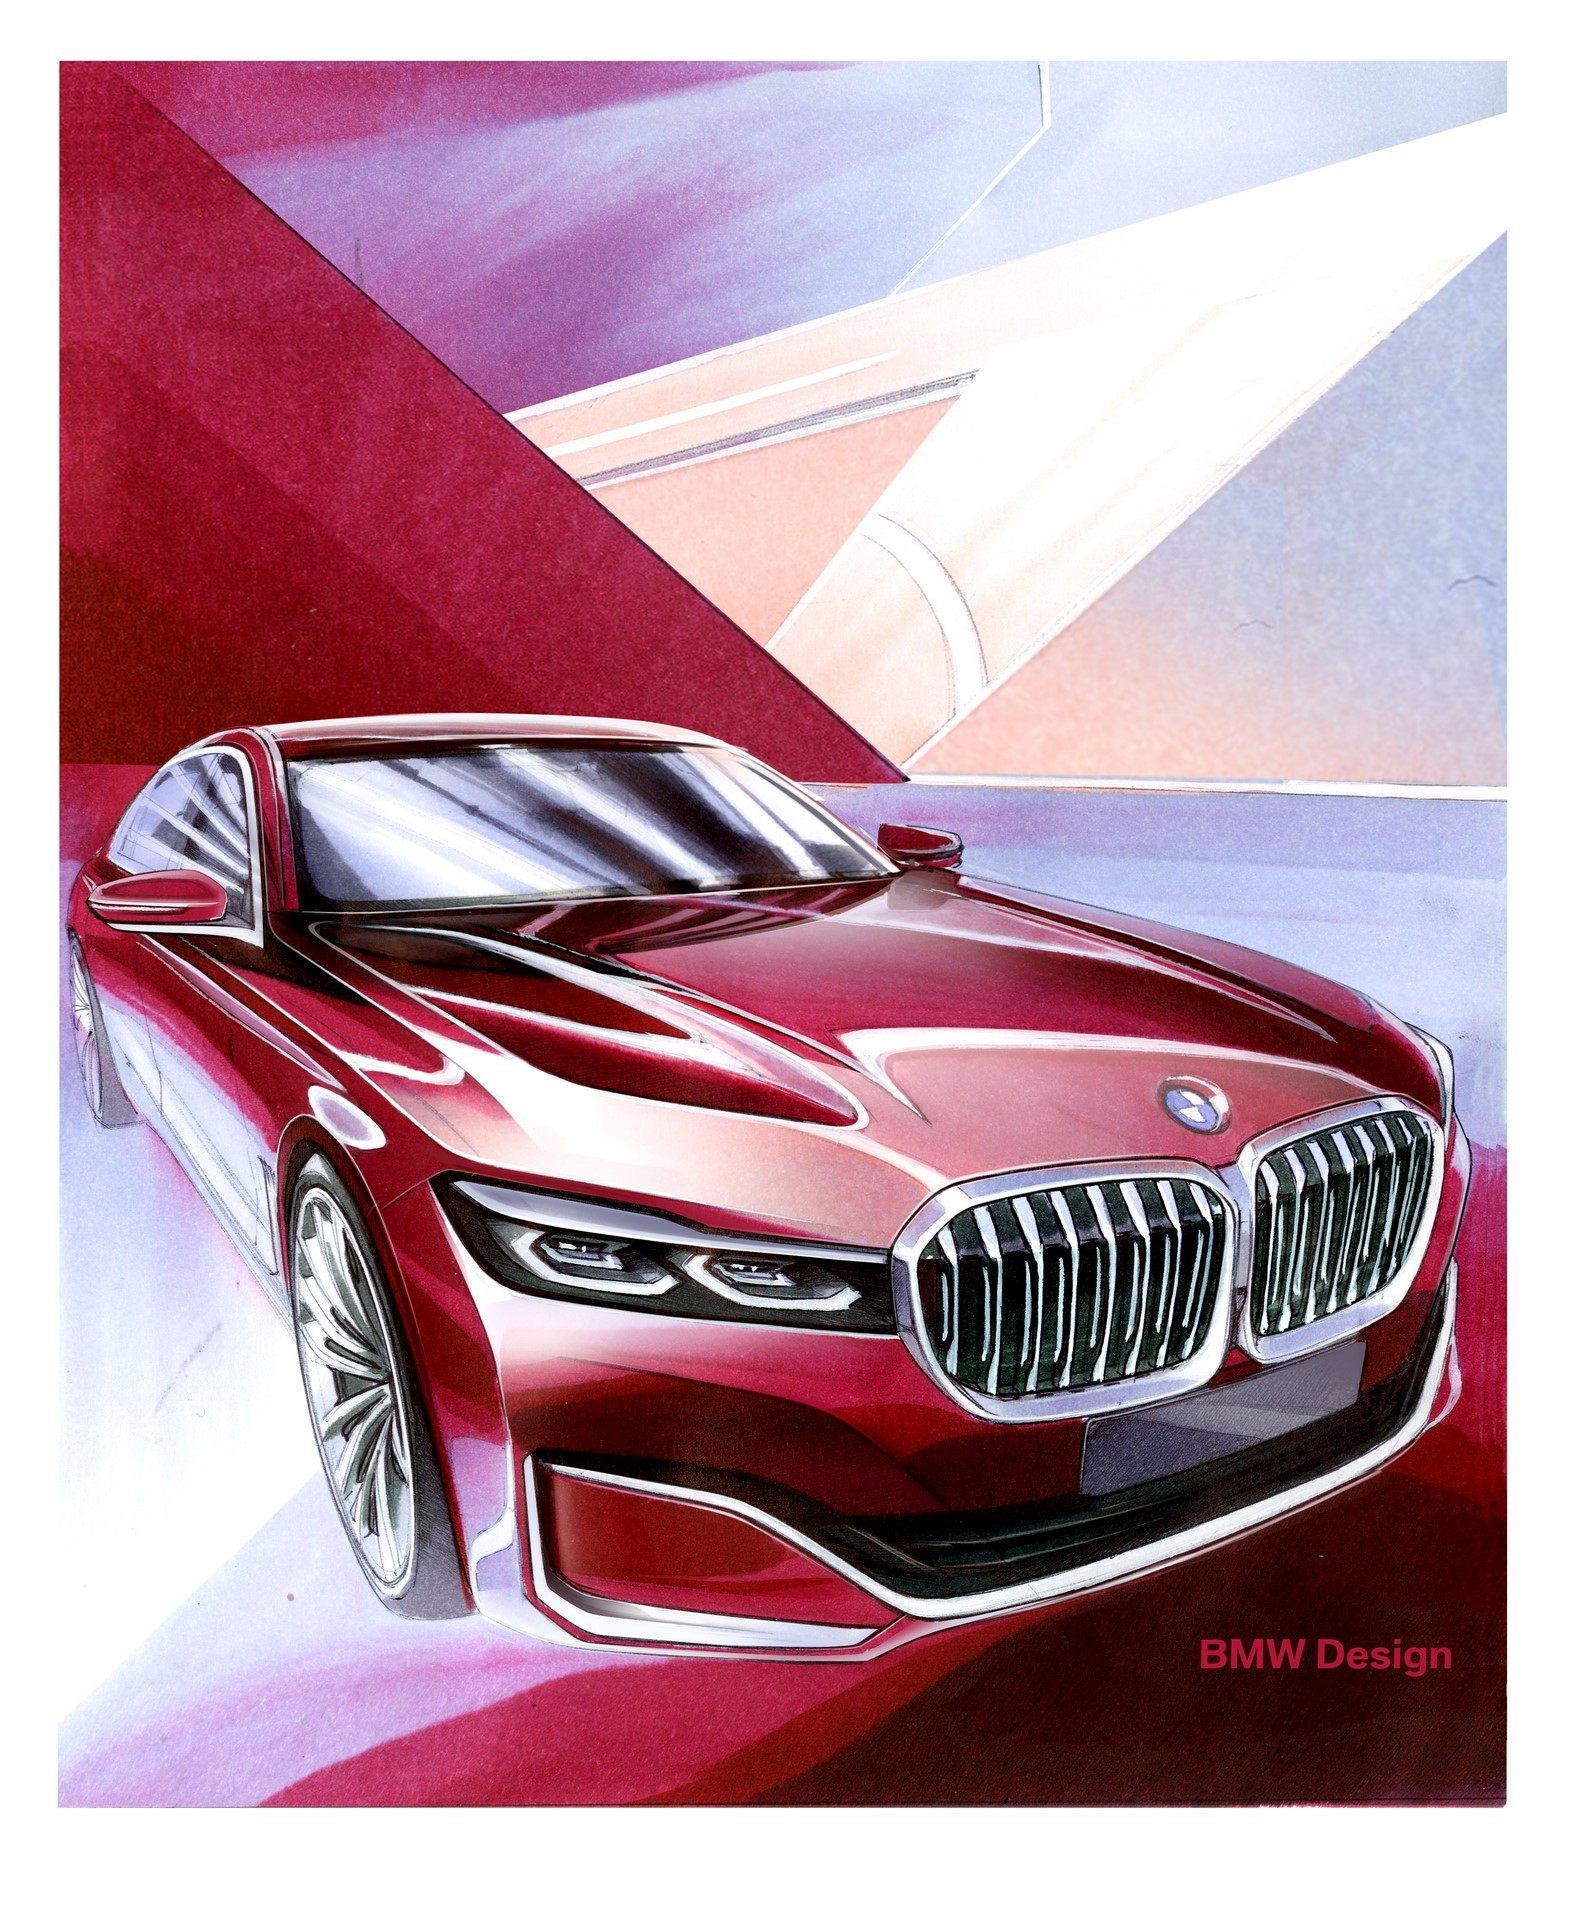 BMW 7-Series facelift 2019 (89)